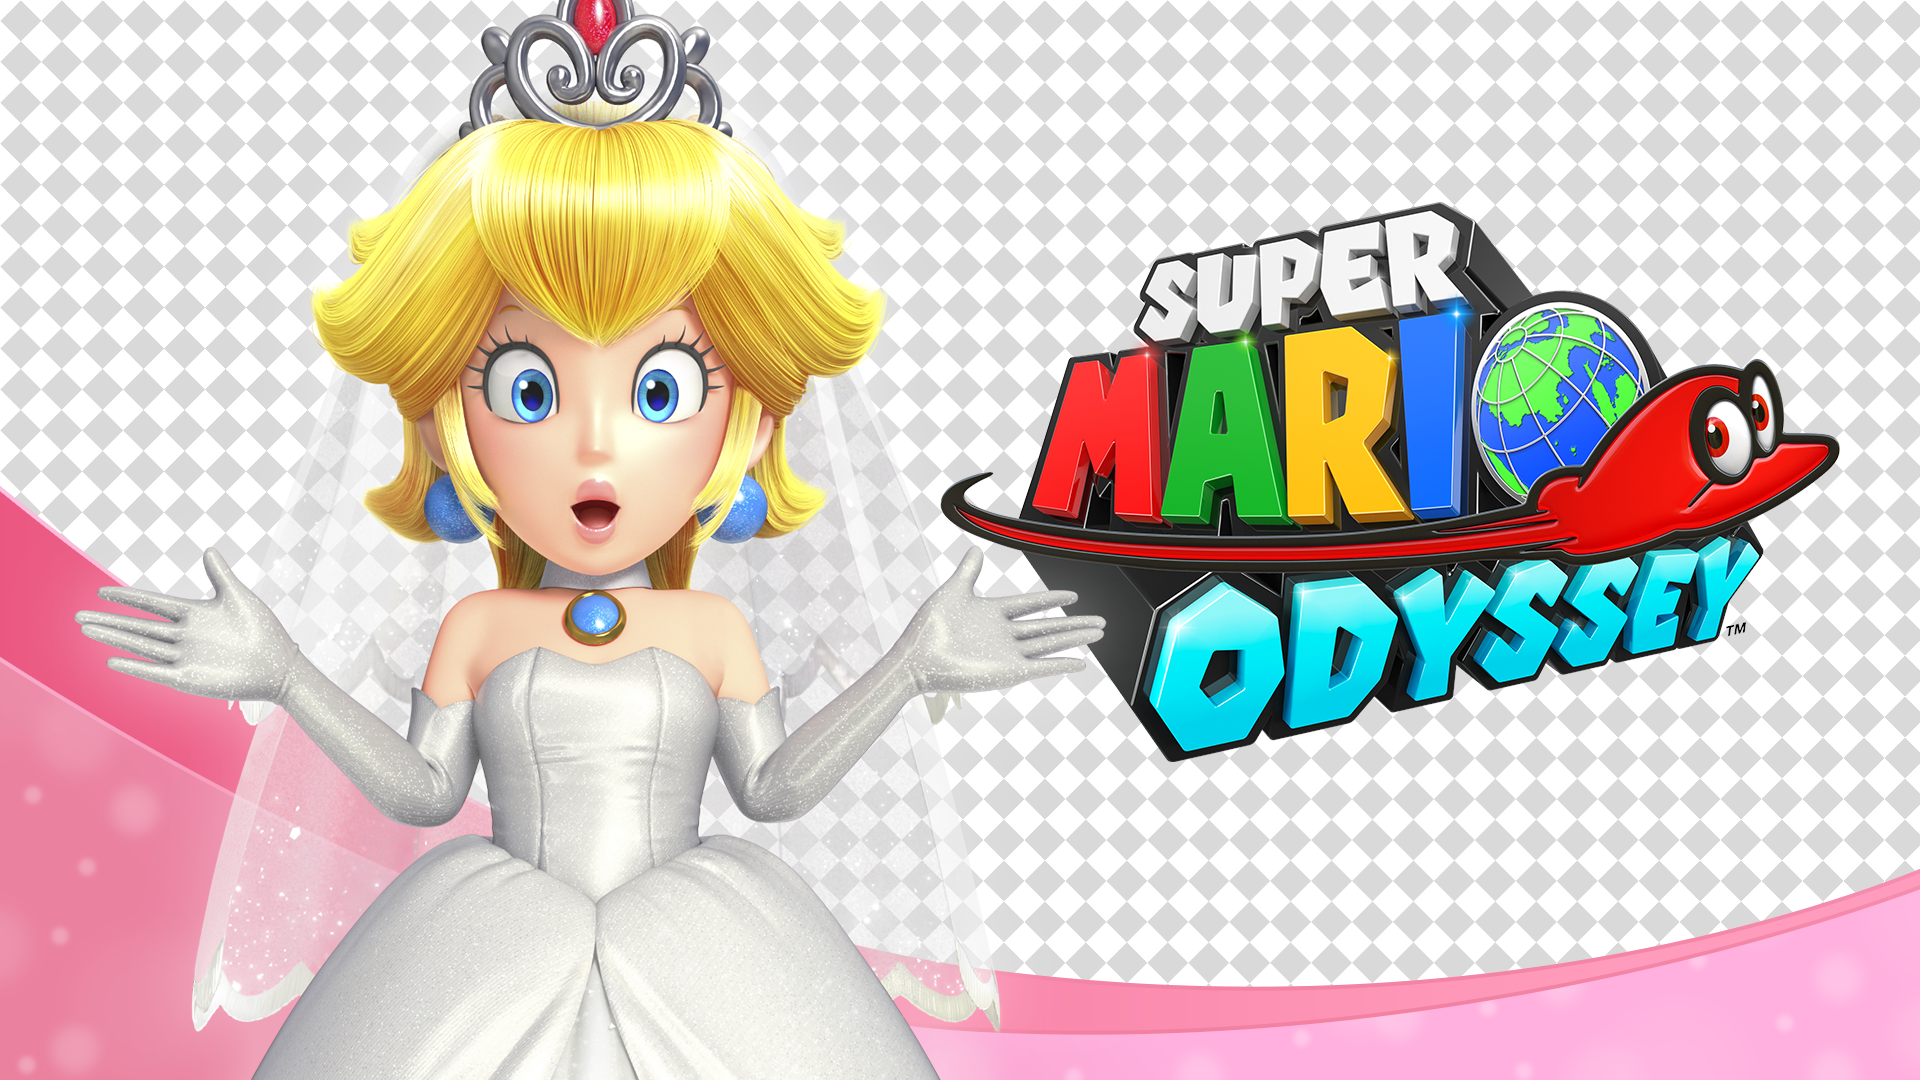 [Wallpaper] Princess Peach, Soon-to-Wed(1920x1080) by ...